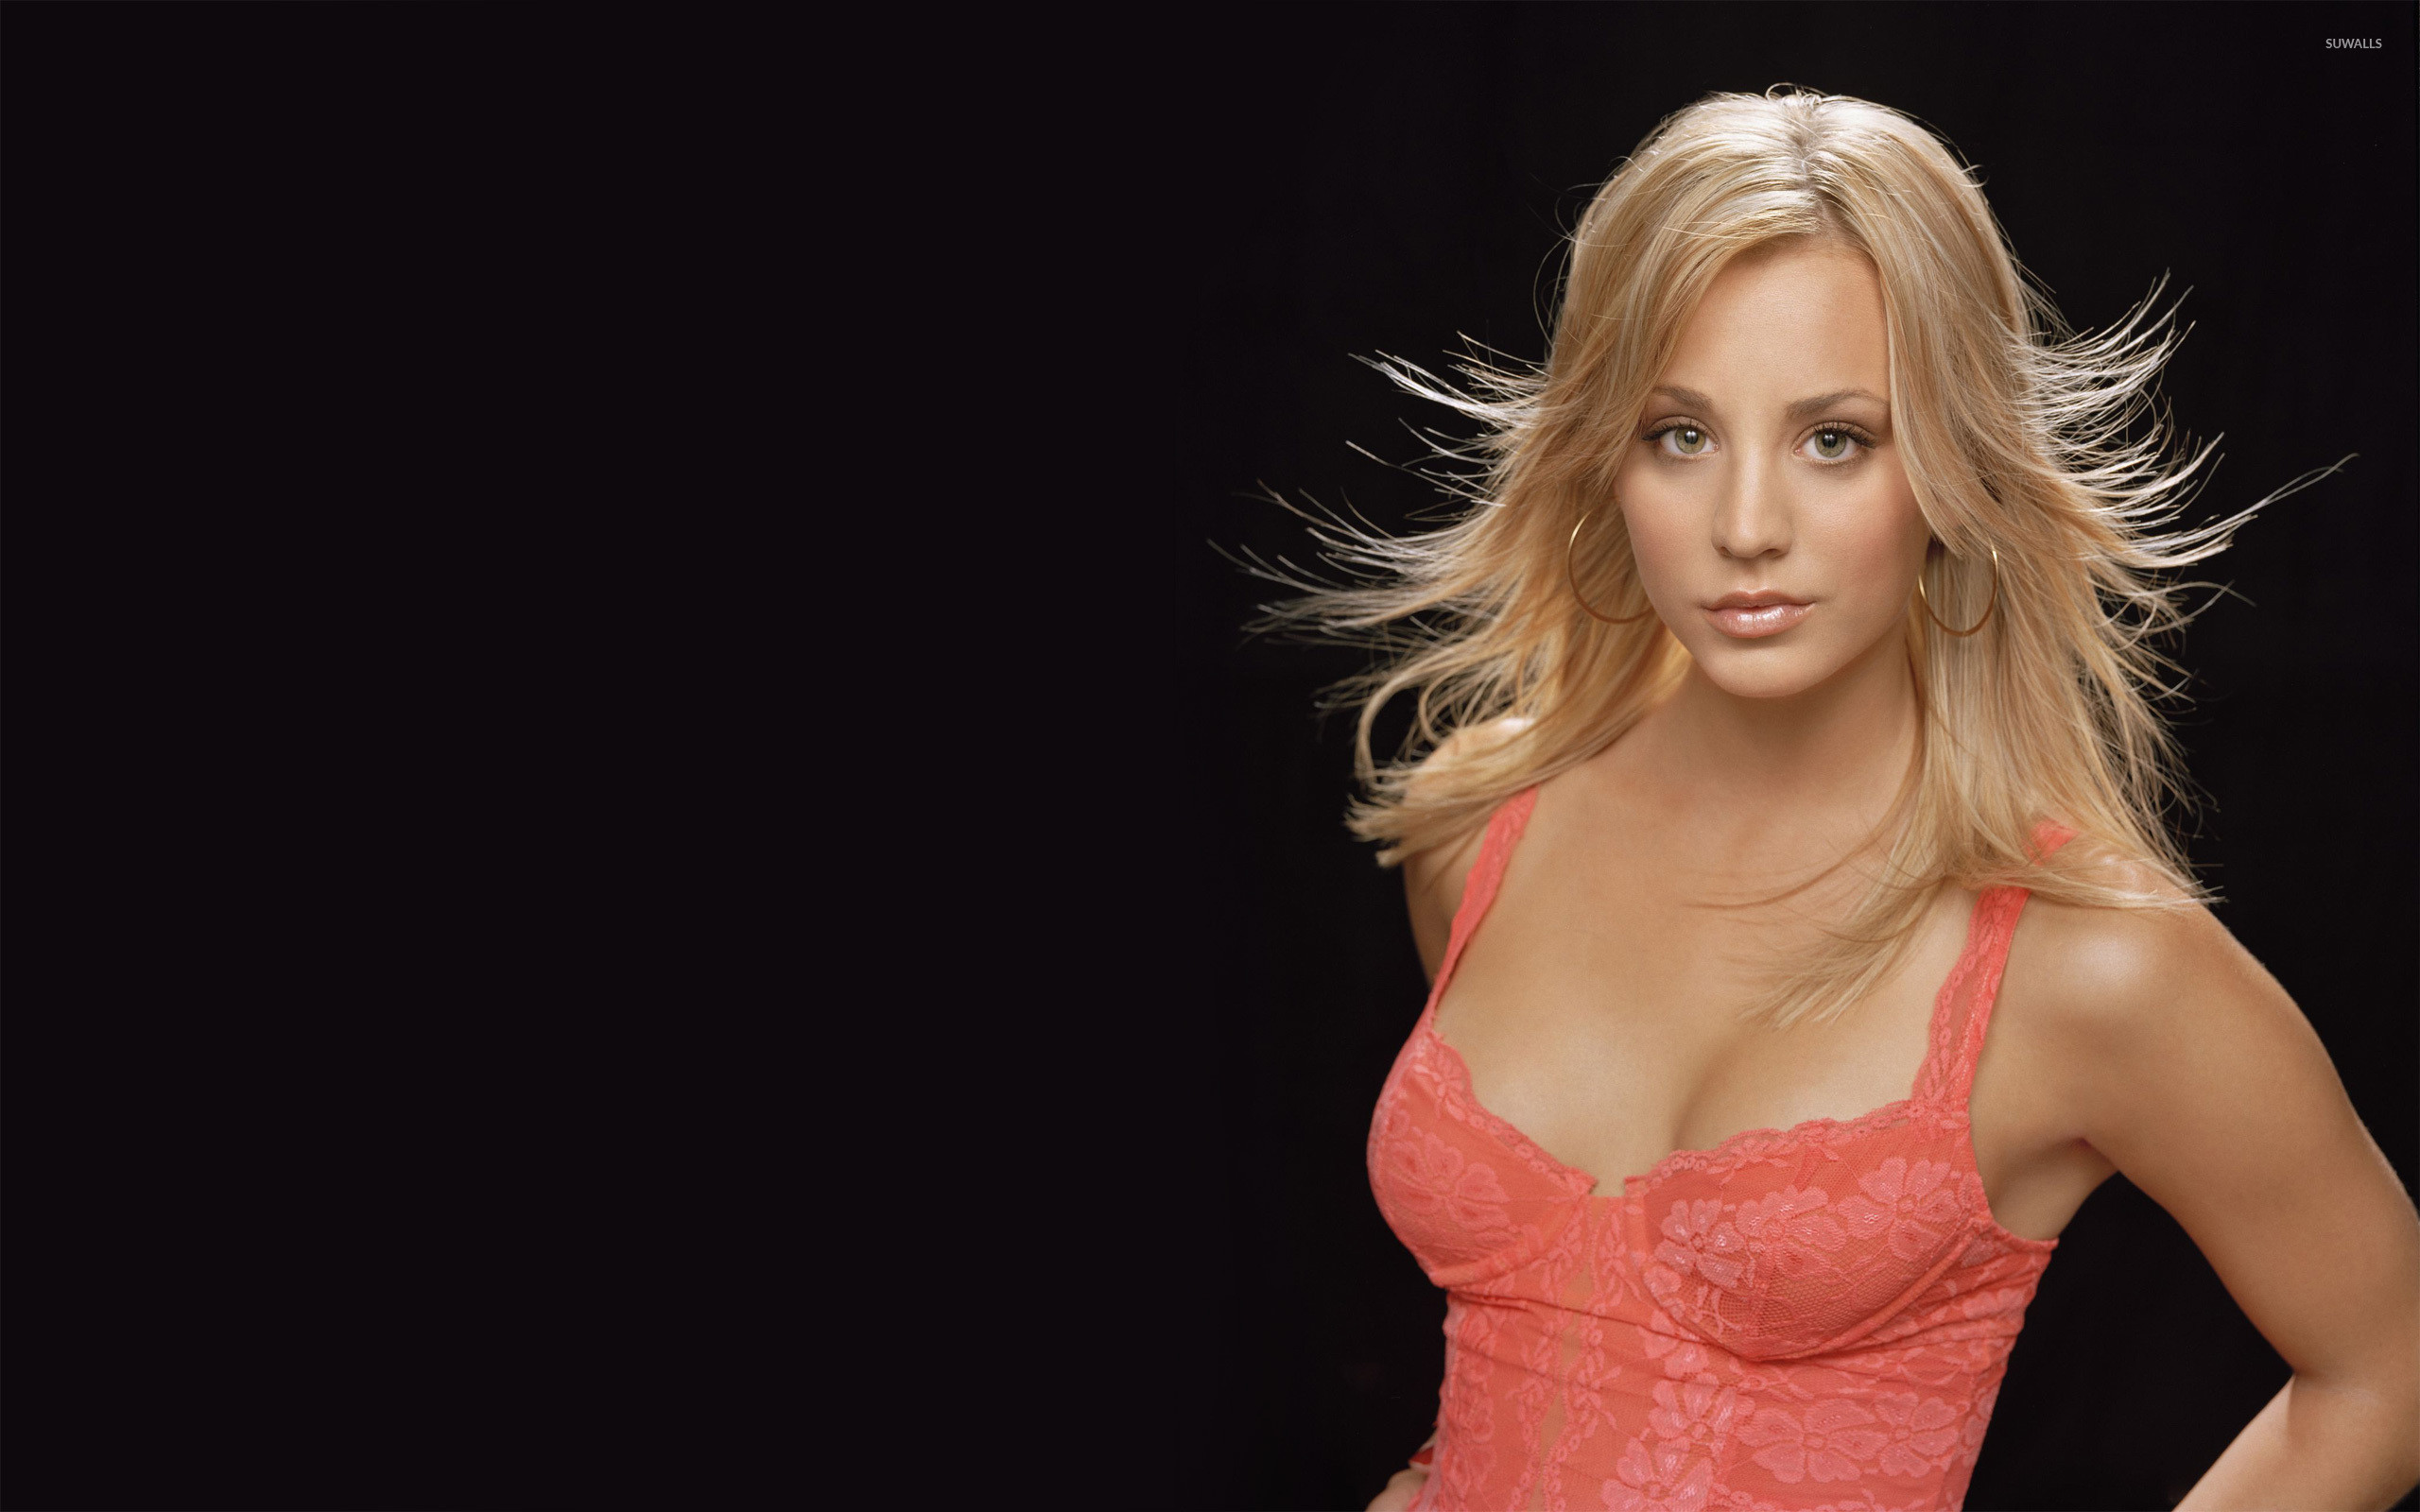 Kaley Cuoco : WALLPAPERS For Everyone